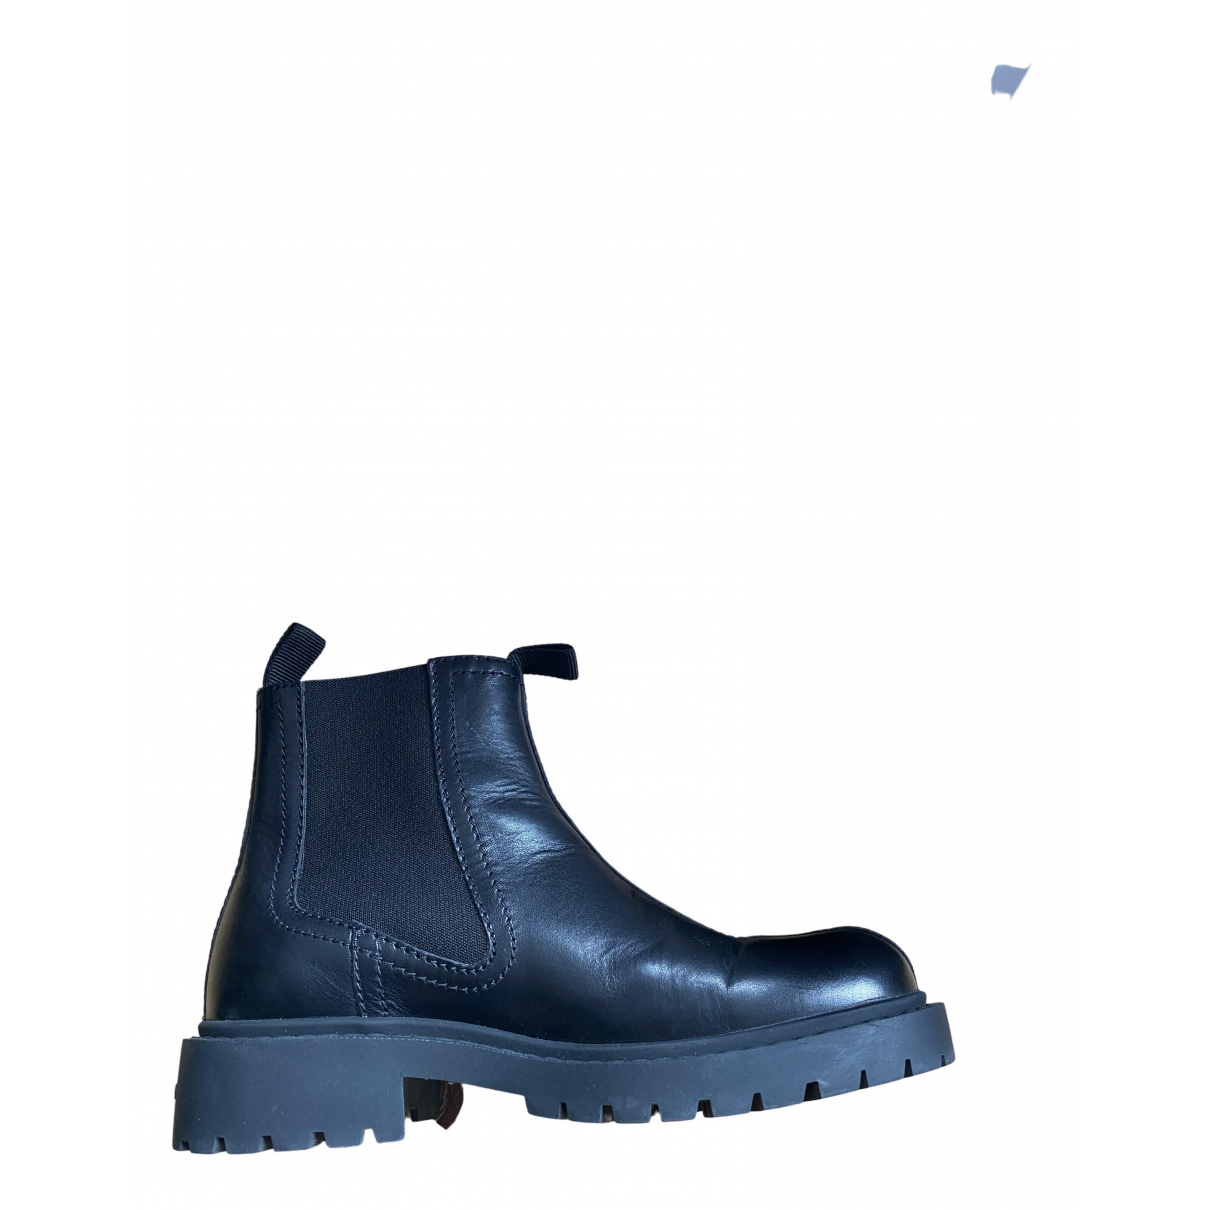 Kenzo N Black Leather Boots for Men 40 EU